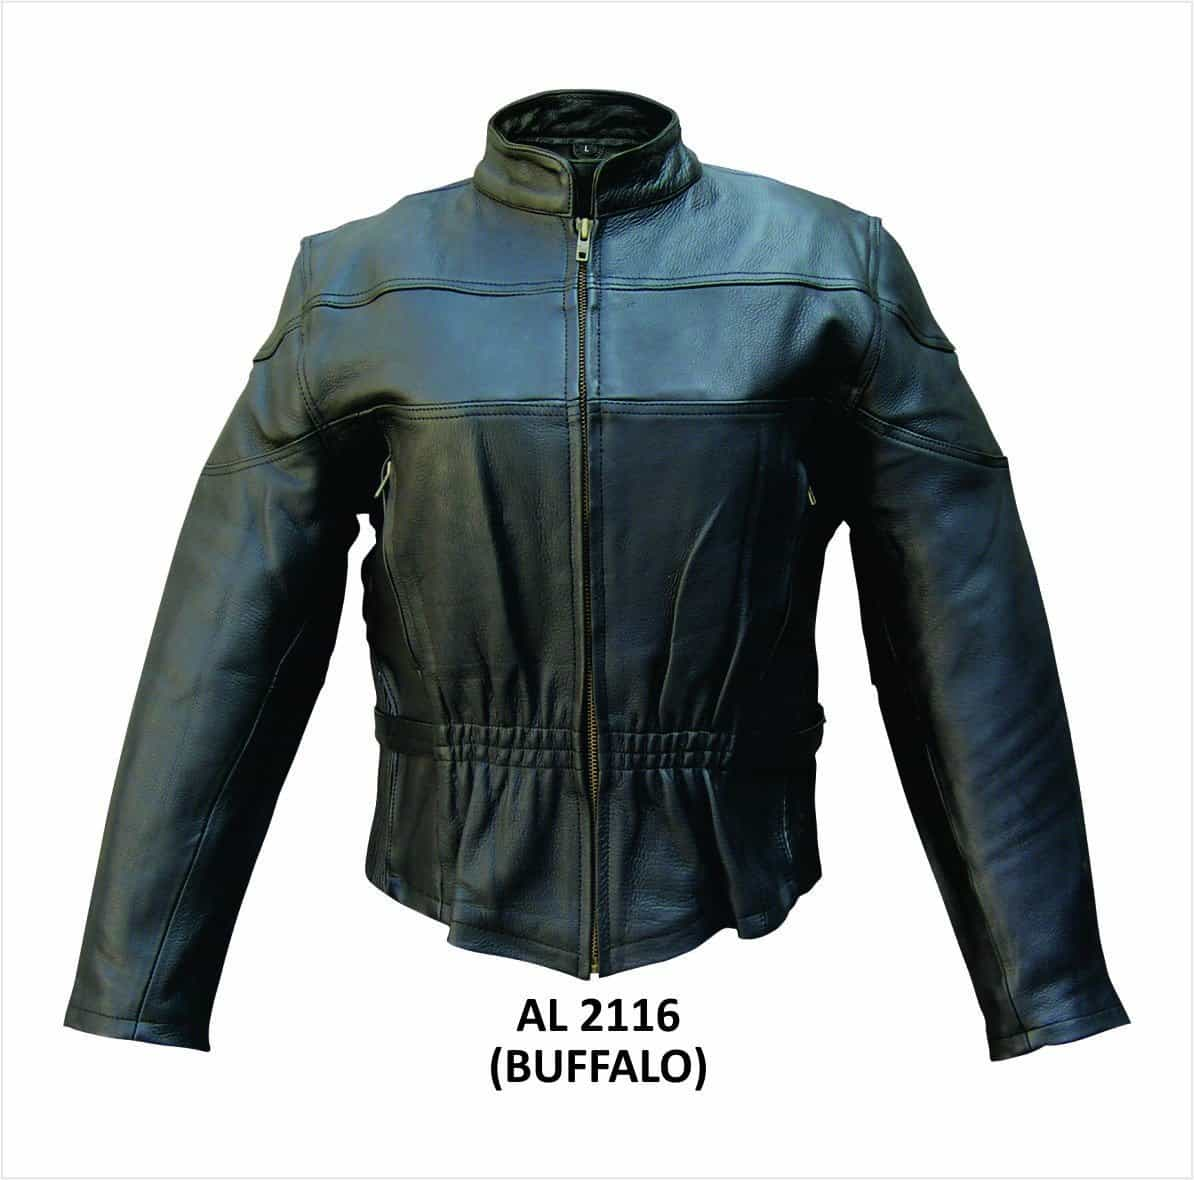 bedinhome - AL2116 Ladies Motorcycle Buffalo full sleeve removable Zip Out lining 2 Zipper Chest Vented Biker Jacket - All State Leather - Ladies Leather Jacket